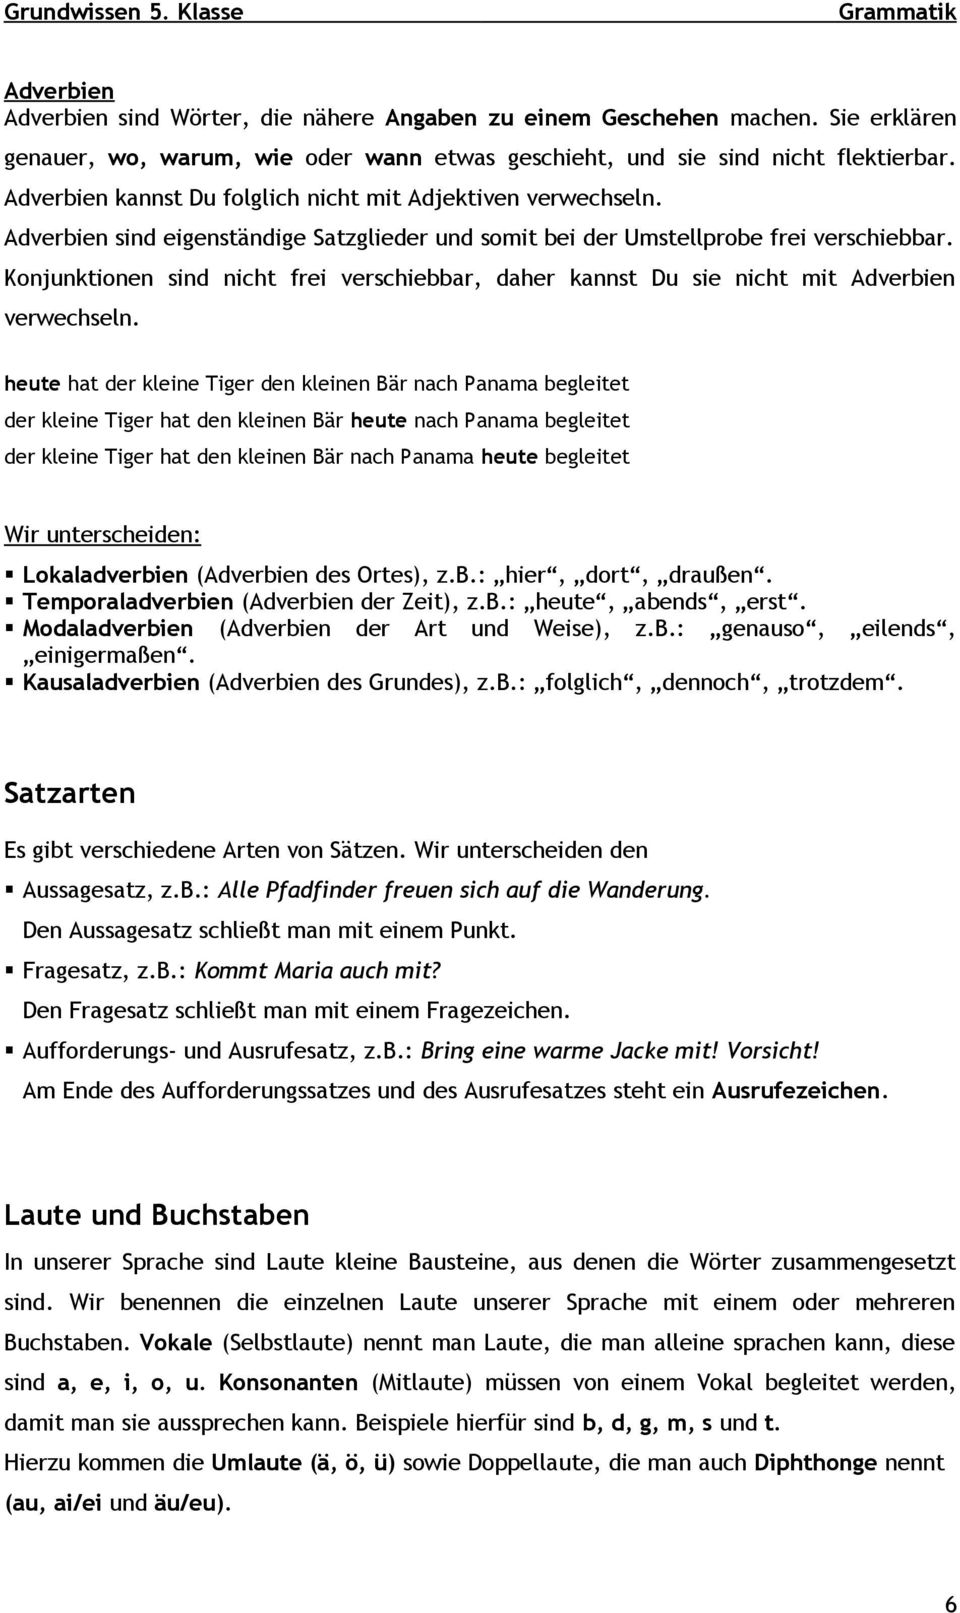 Fine 5Klasse Adverb Arbeitsblatt Collection - Kindergarten ...